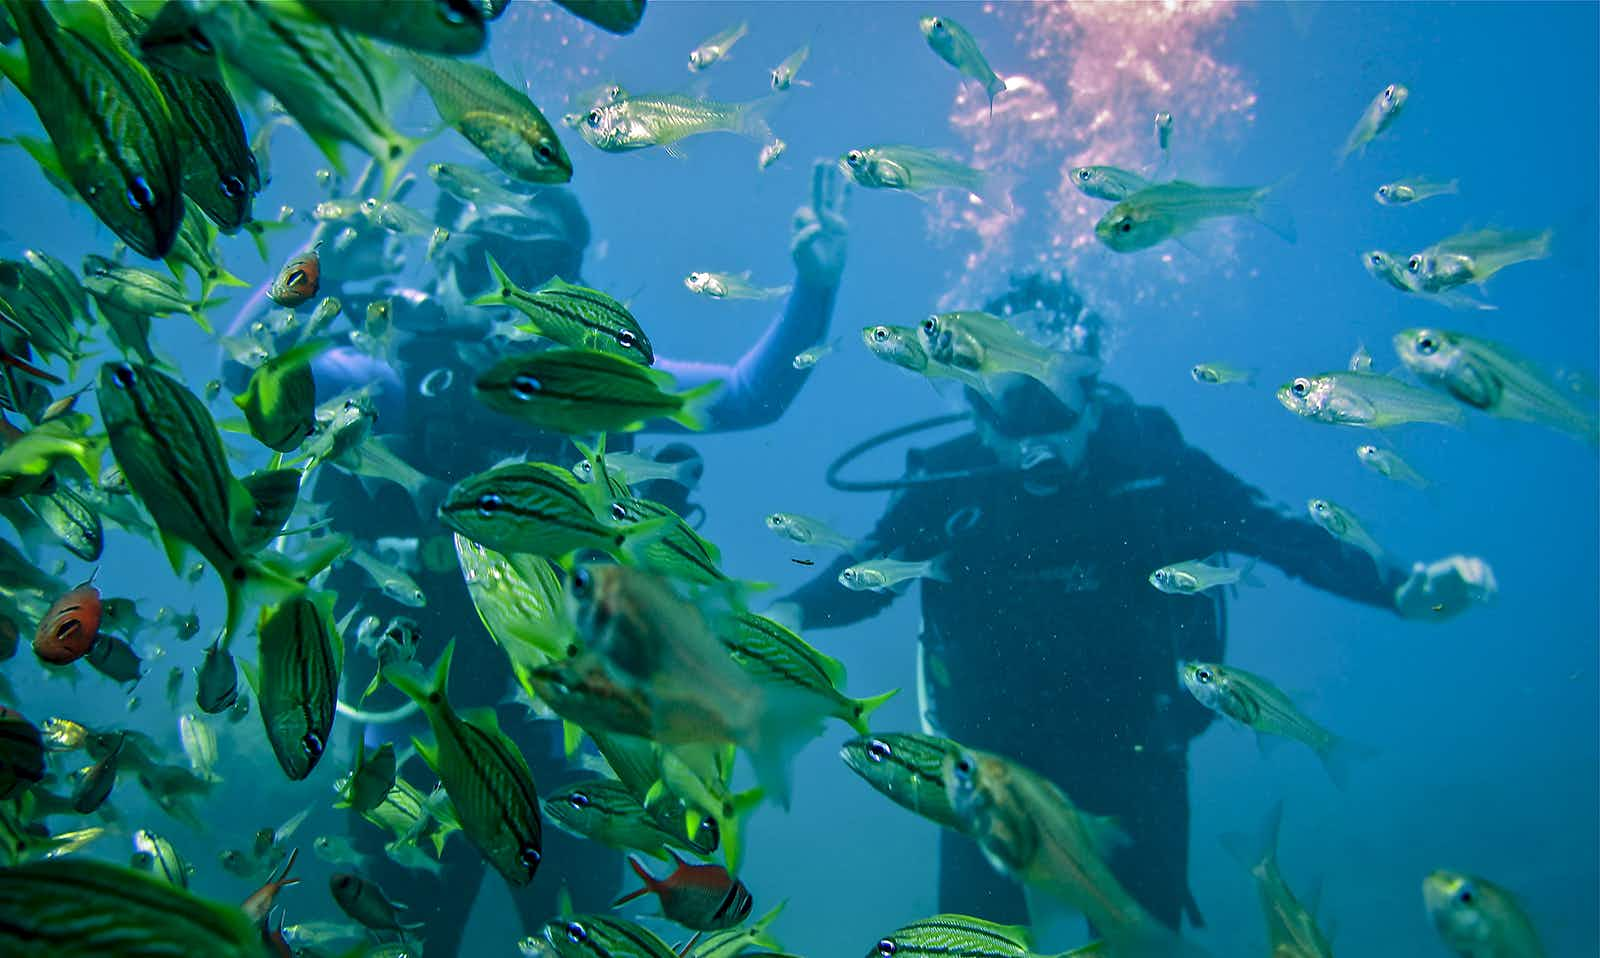 Swim with the fishes (in a good way) at Parque Nacional Tayrona © Jacqui de Klerk / Lonely Planet